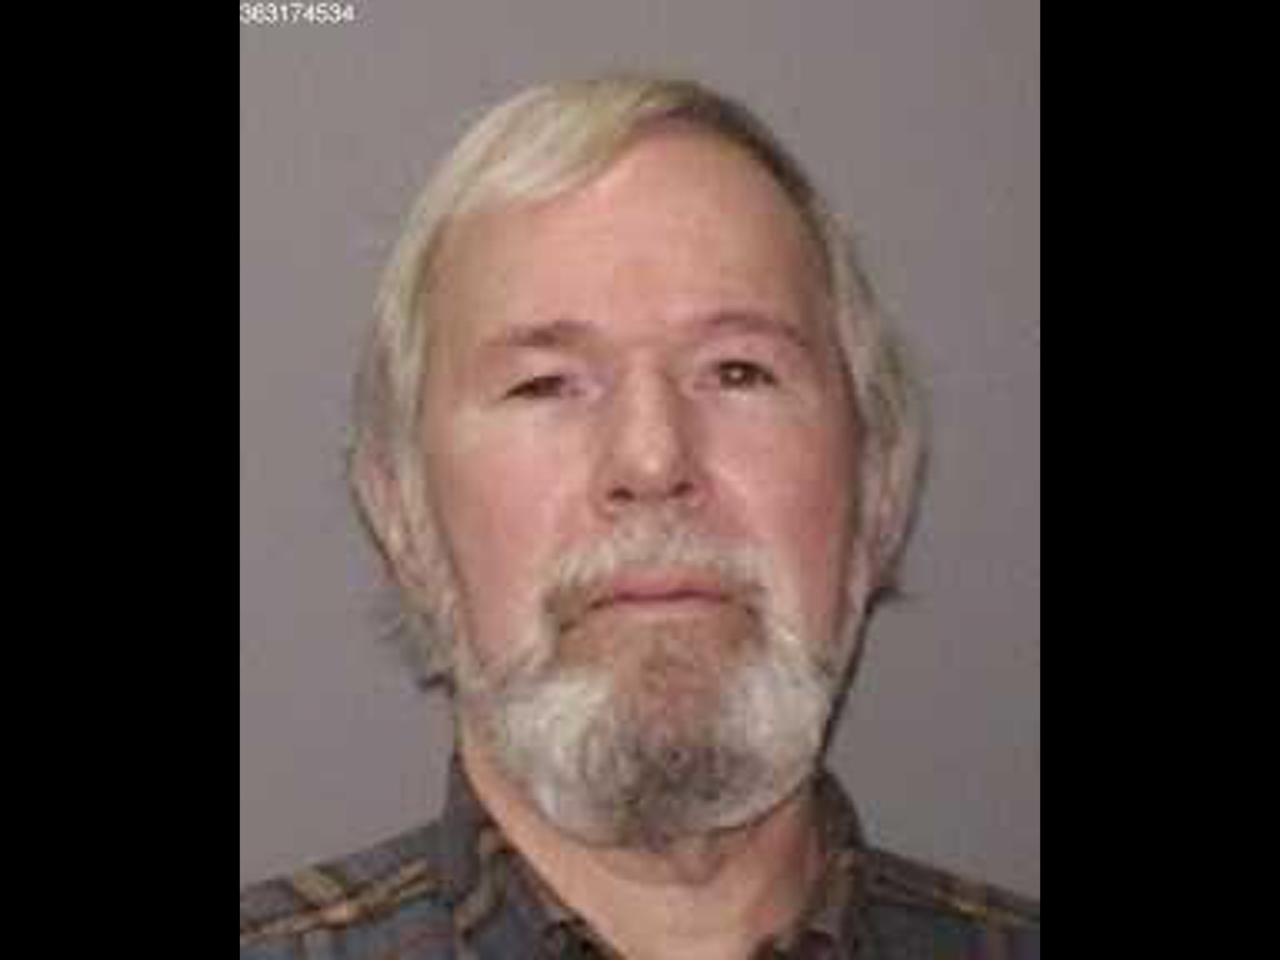 This undated photo provided by the New York State Police shows Kurt R. Meyers, the man being sought in connection with the shooting of six people in two incidents in upstate New York, Wednesday, March 13, 2013. Authorities said guns and ammunition were found inside Meyers' Mohawk, N.Y., apartment after emergency crews were sent to put out a fire there Wednesday morning. Soon after, two people were fatally shot and two others wounded at John's Barber Shop, around the corner from the apartment, police said. The second shooting happened about a mile away in Herkimer, where two people were killed at Gaffey's Fast Lube and Car Wash. (AP Photo/New York State Police)